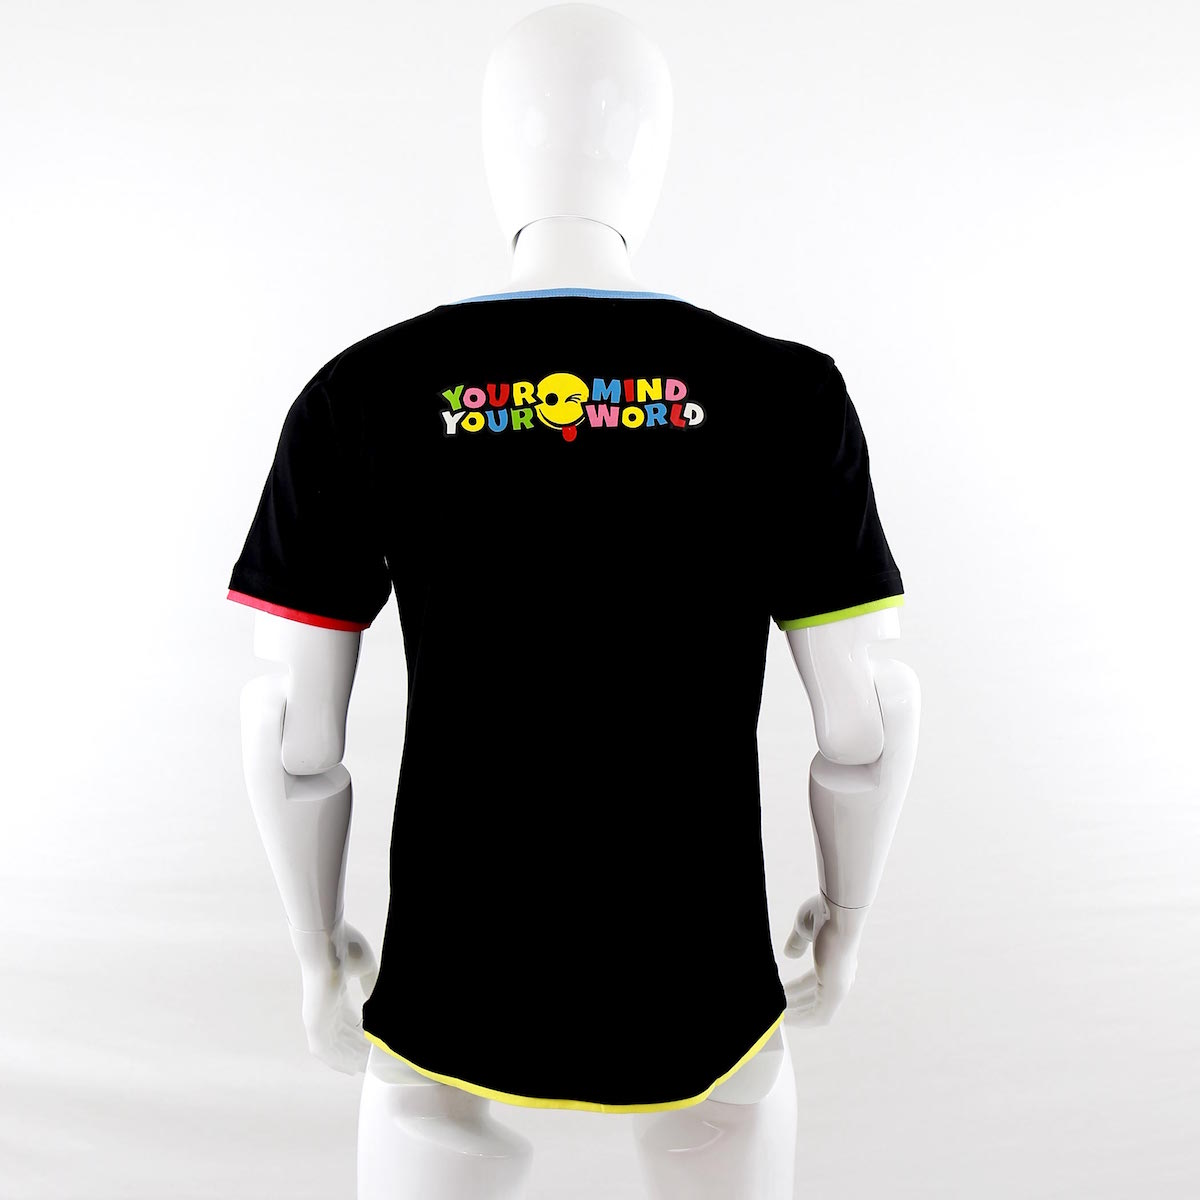 Cool Graphic Designs For T Shirts